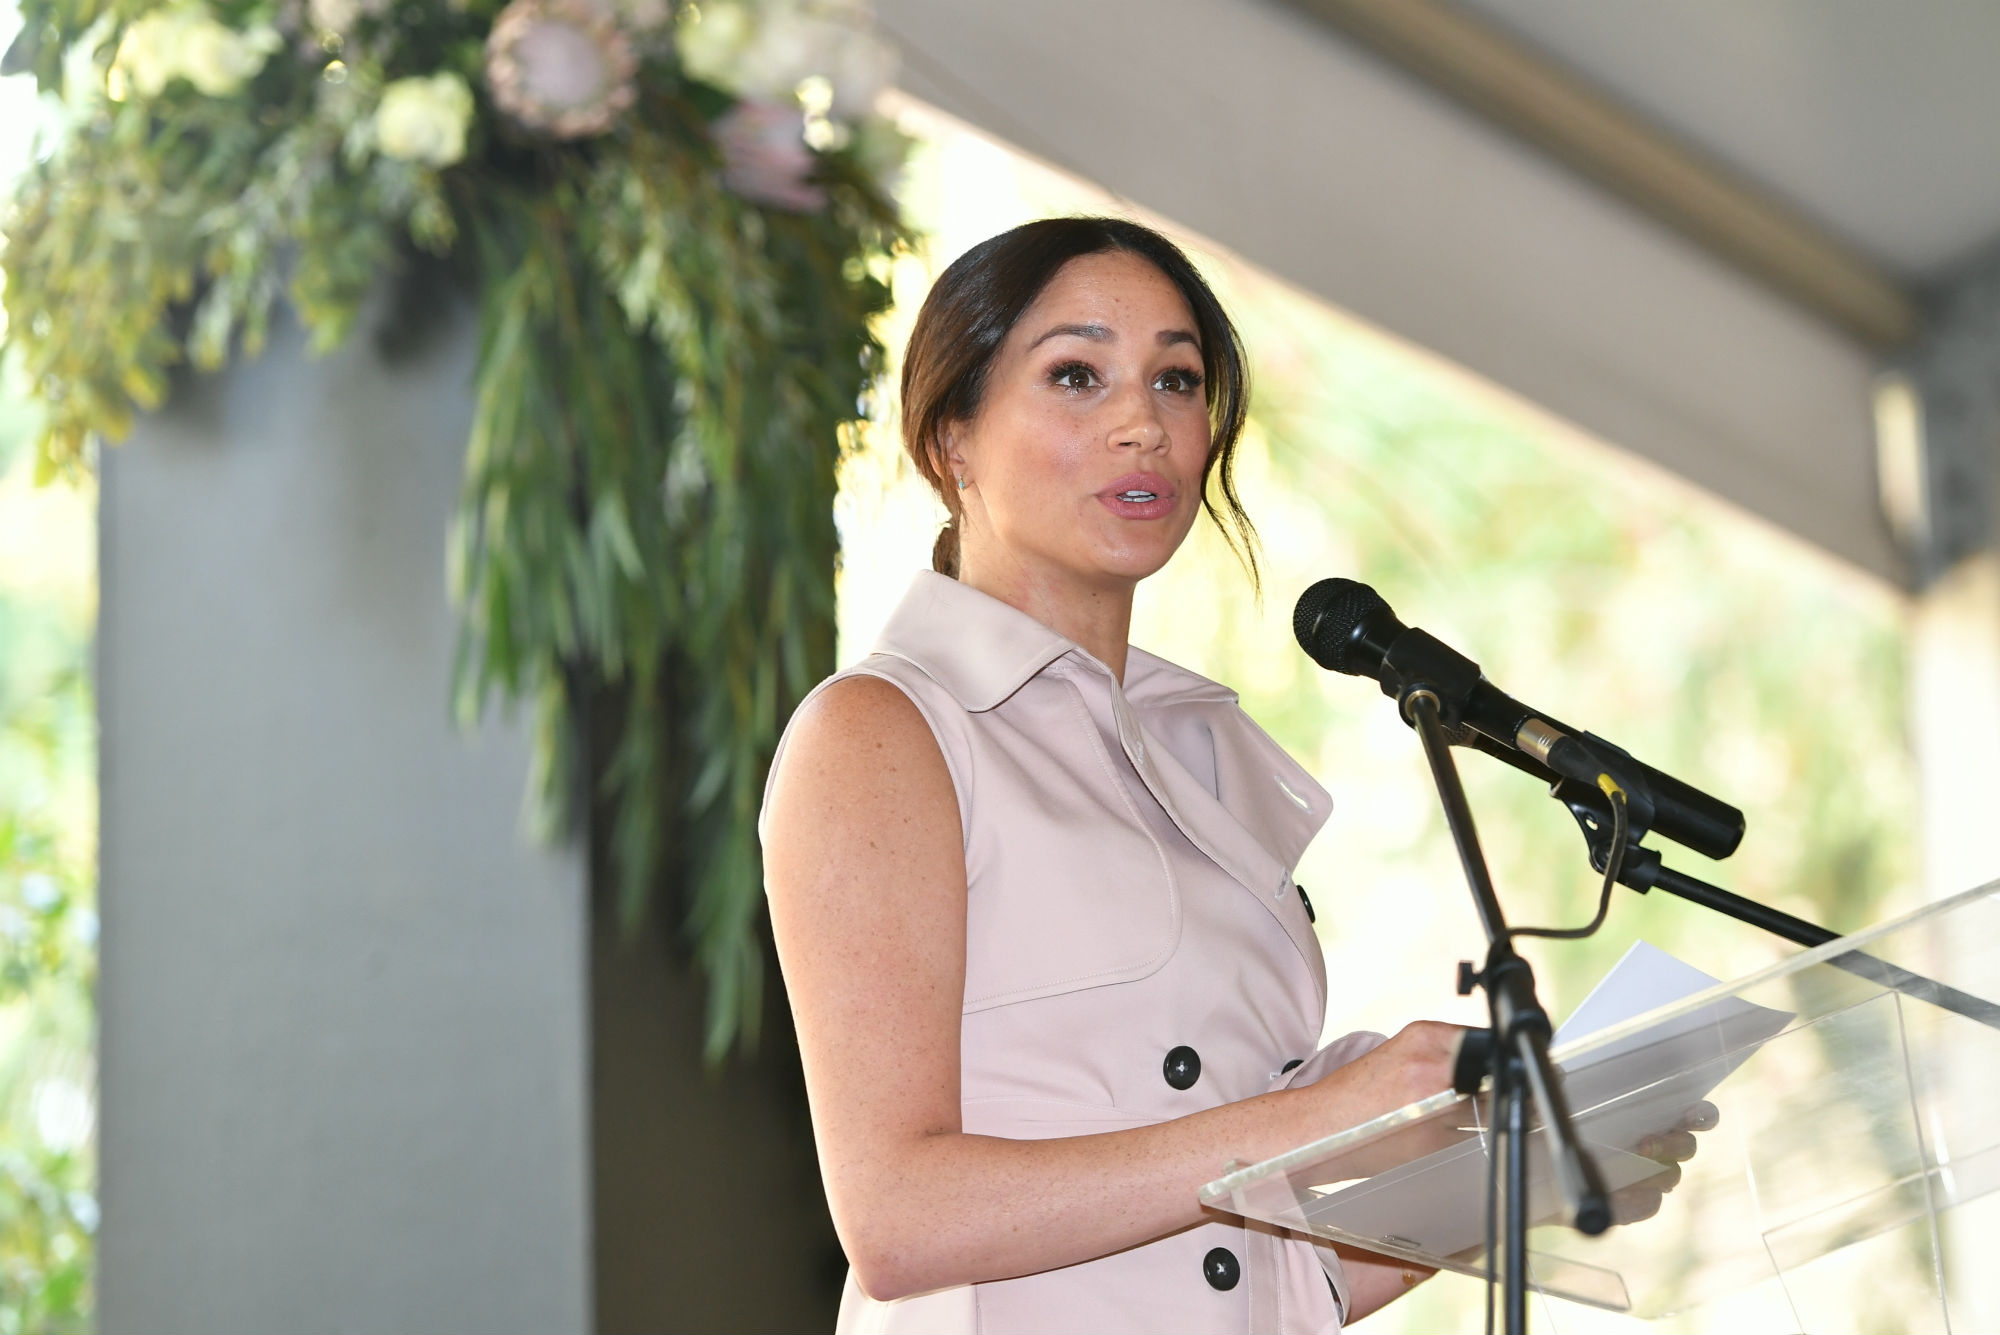 The Duchess of Sussex final speech